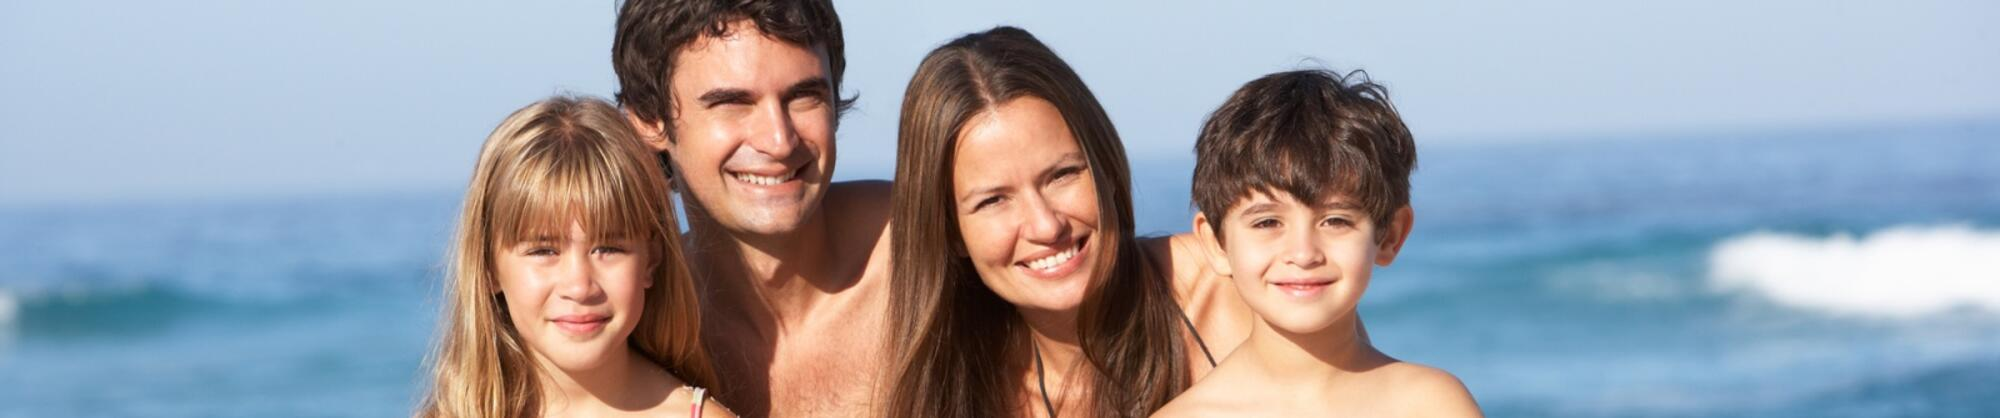 Offer 2nd Week of August in Rimini: Hotel with SWIMMING POOL, JUMPING CASTLE, ANIMATION and WI-FI